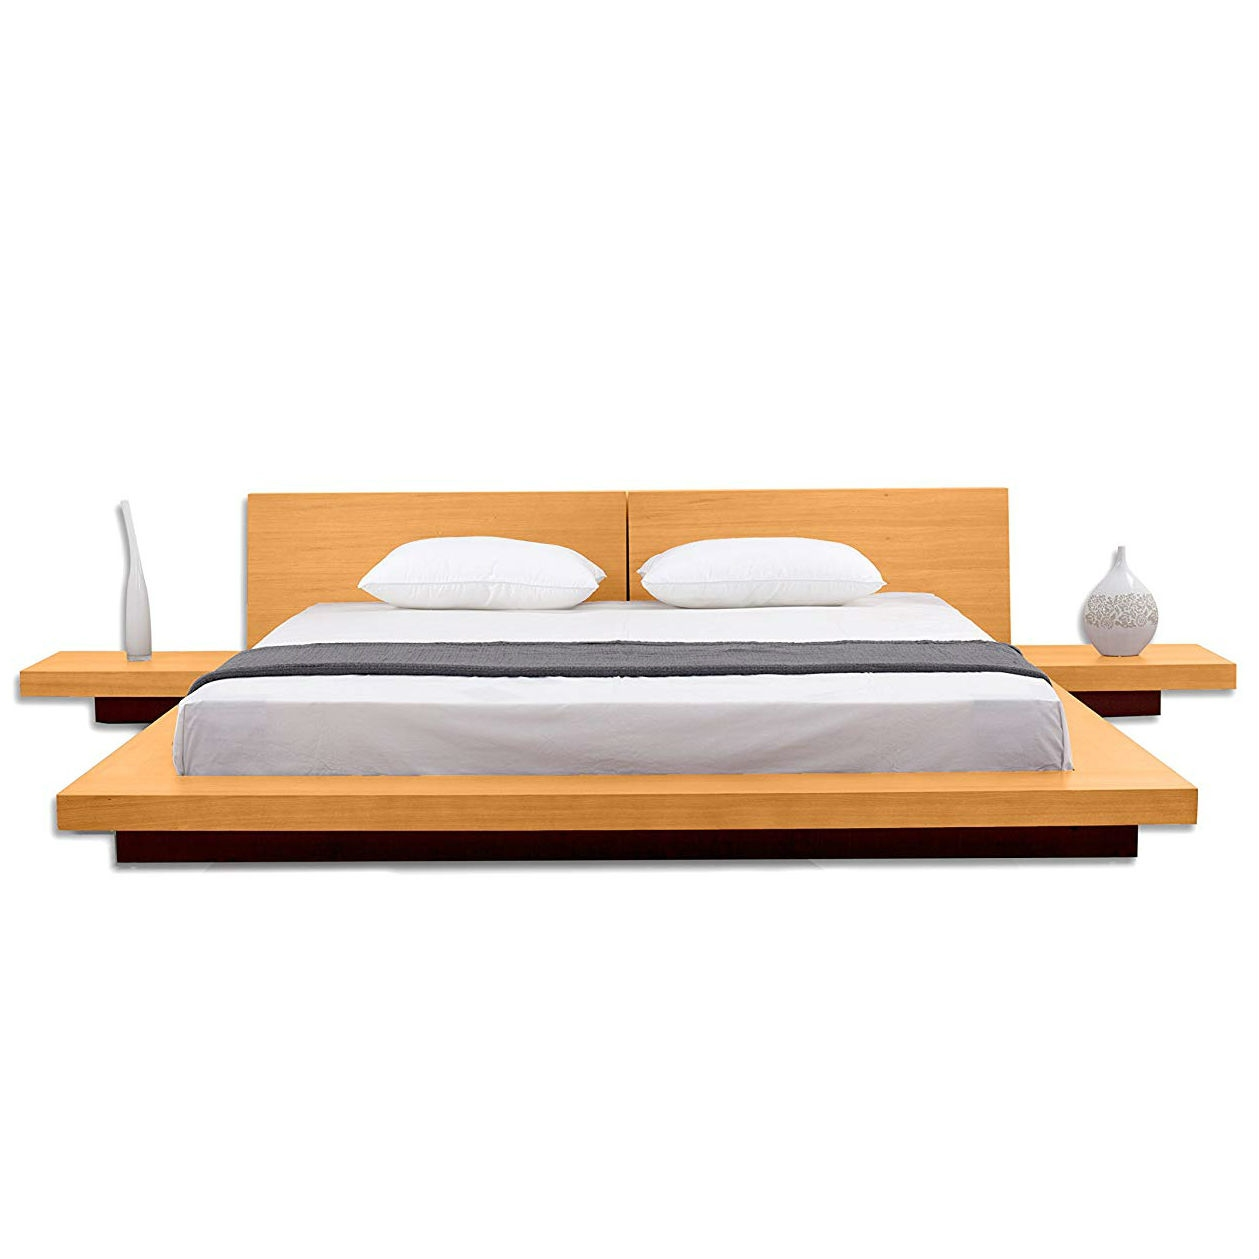 California King Size Modern Platform Bed With Headboard And 2 Nightstands In Oak Fastfurnishings Com